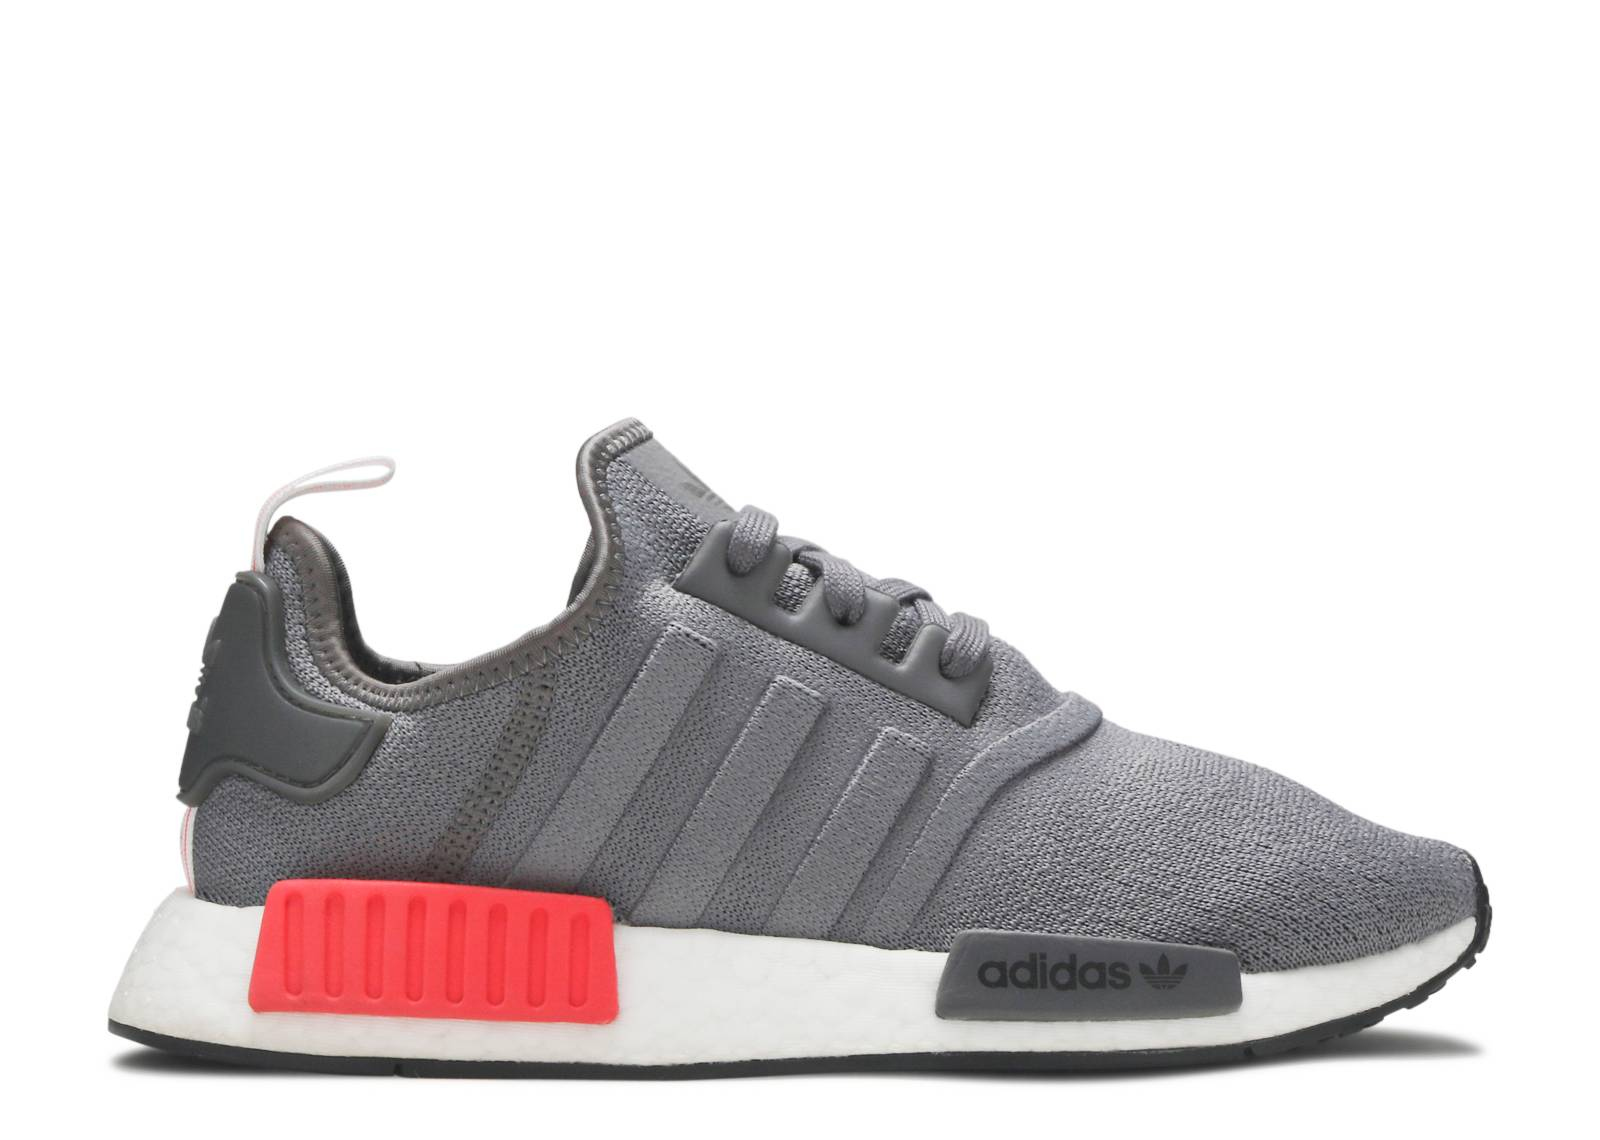 low priced 89cbf 647ff Adidas NMD - adidas Originals Men's & Women's Shoes | Flight ...